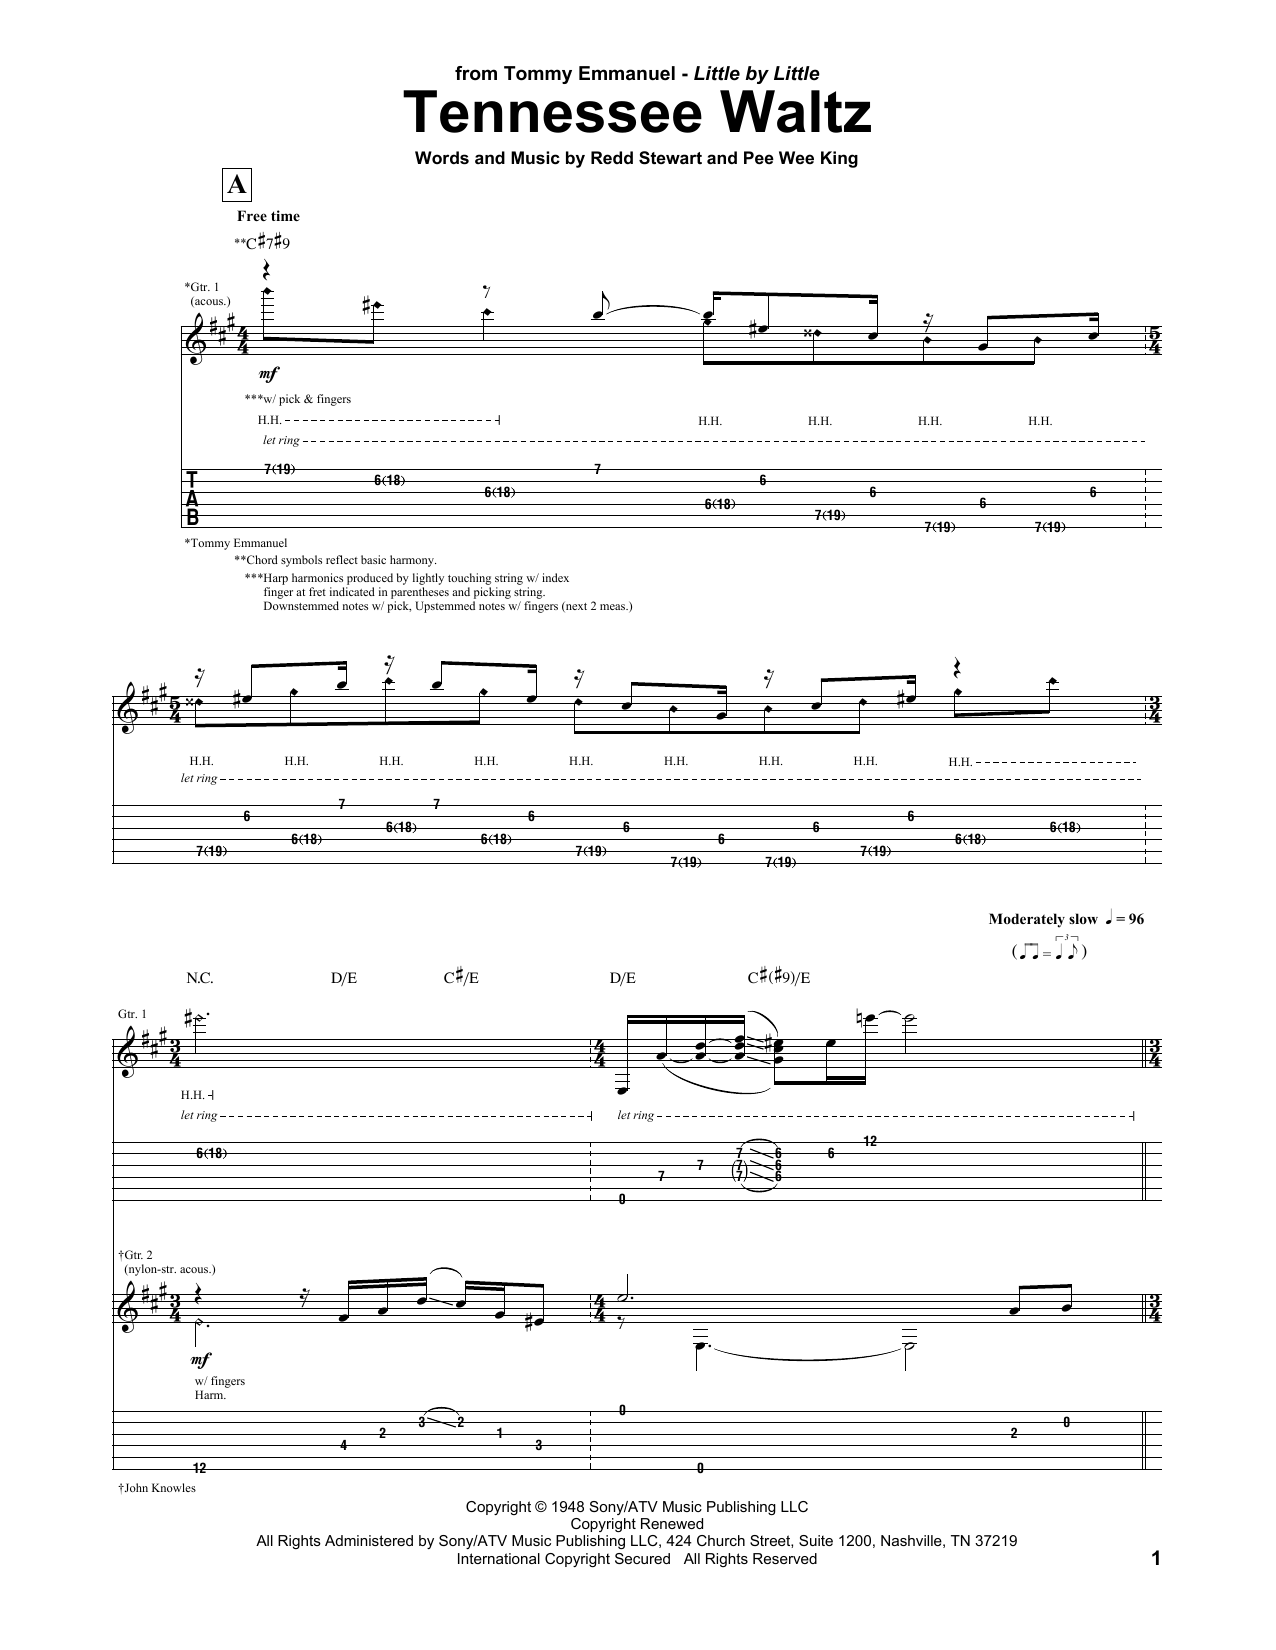 Tennessee waltz guitar tab by tommy emmanuel guitar tab 160338 tennessee waltz sheet music hexwebz Choice Image